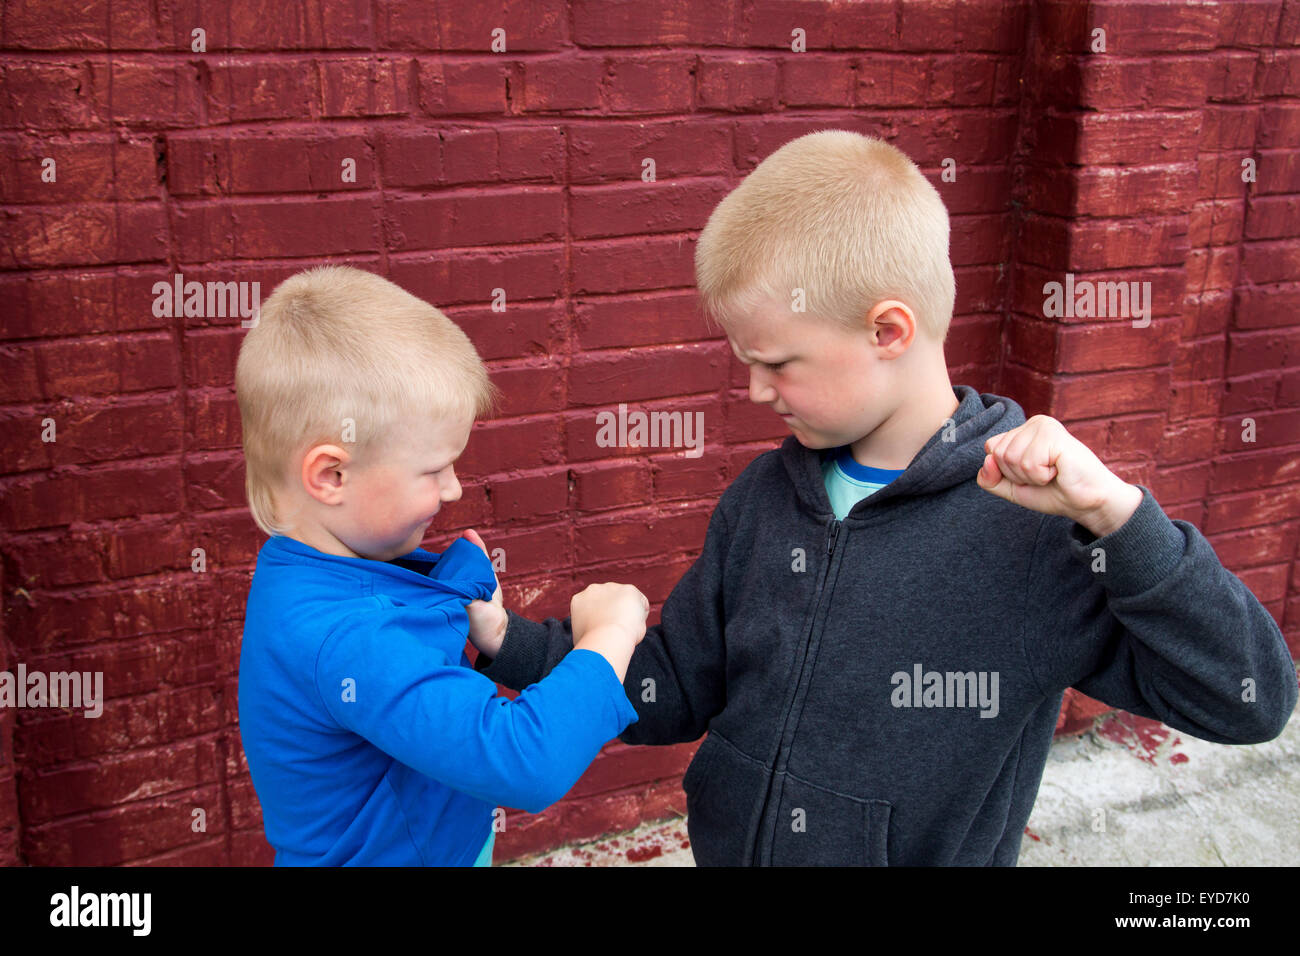 children fight between two angry aggressive brothers (kids, boys) - Stock Image